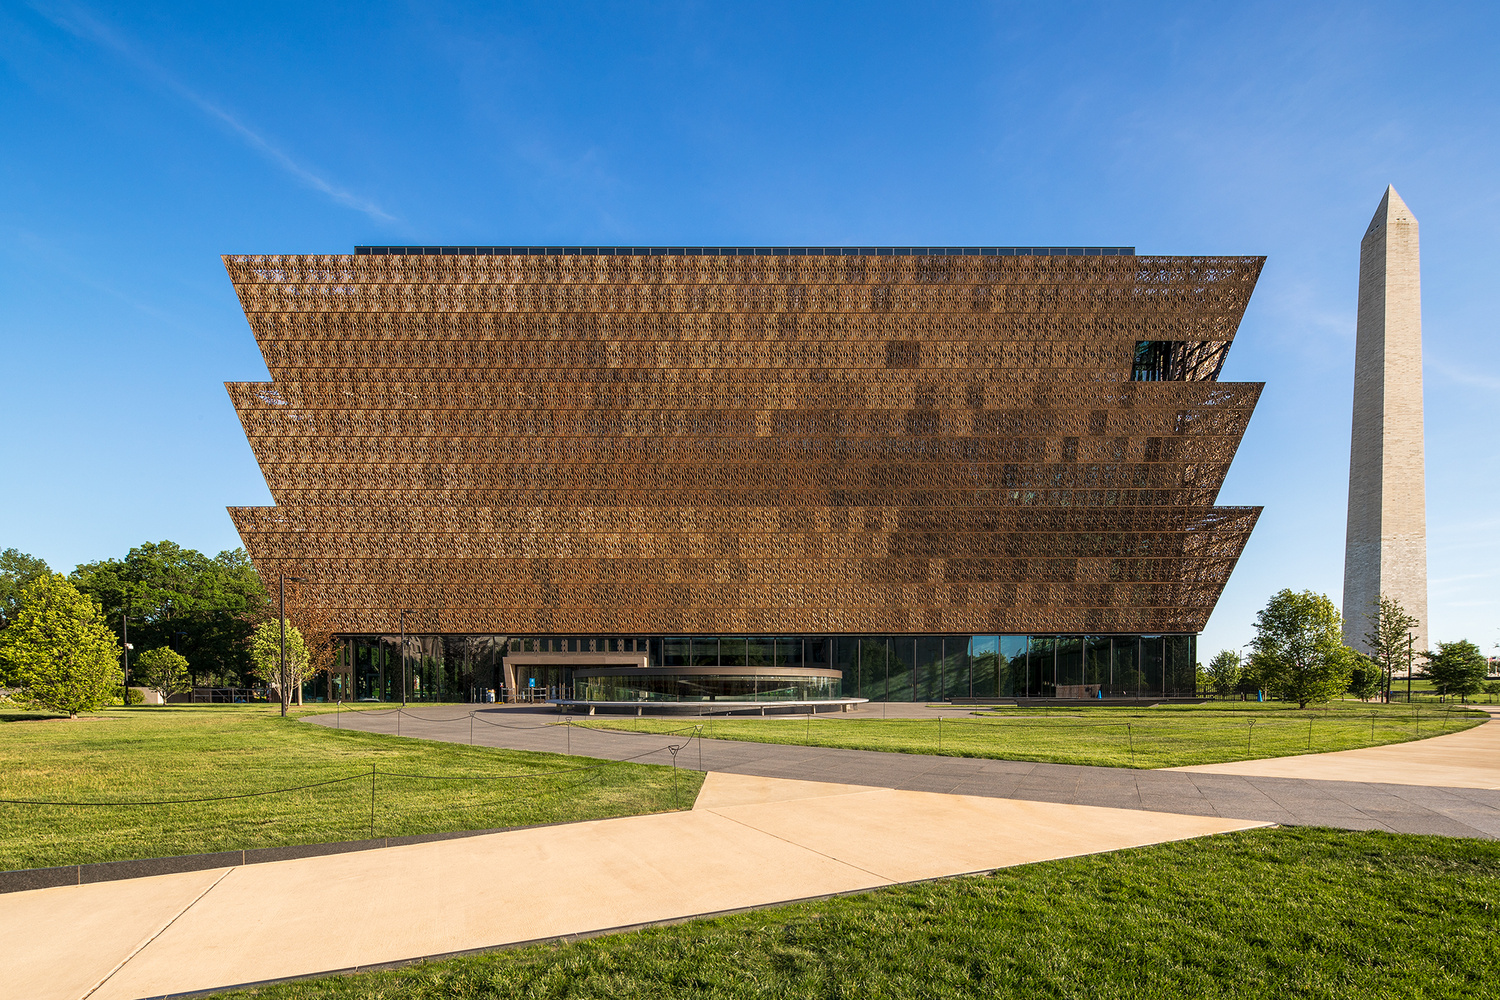 Museum of African American History by Jonathan Reid